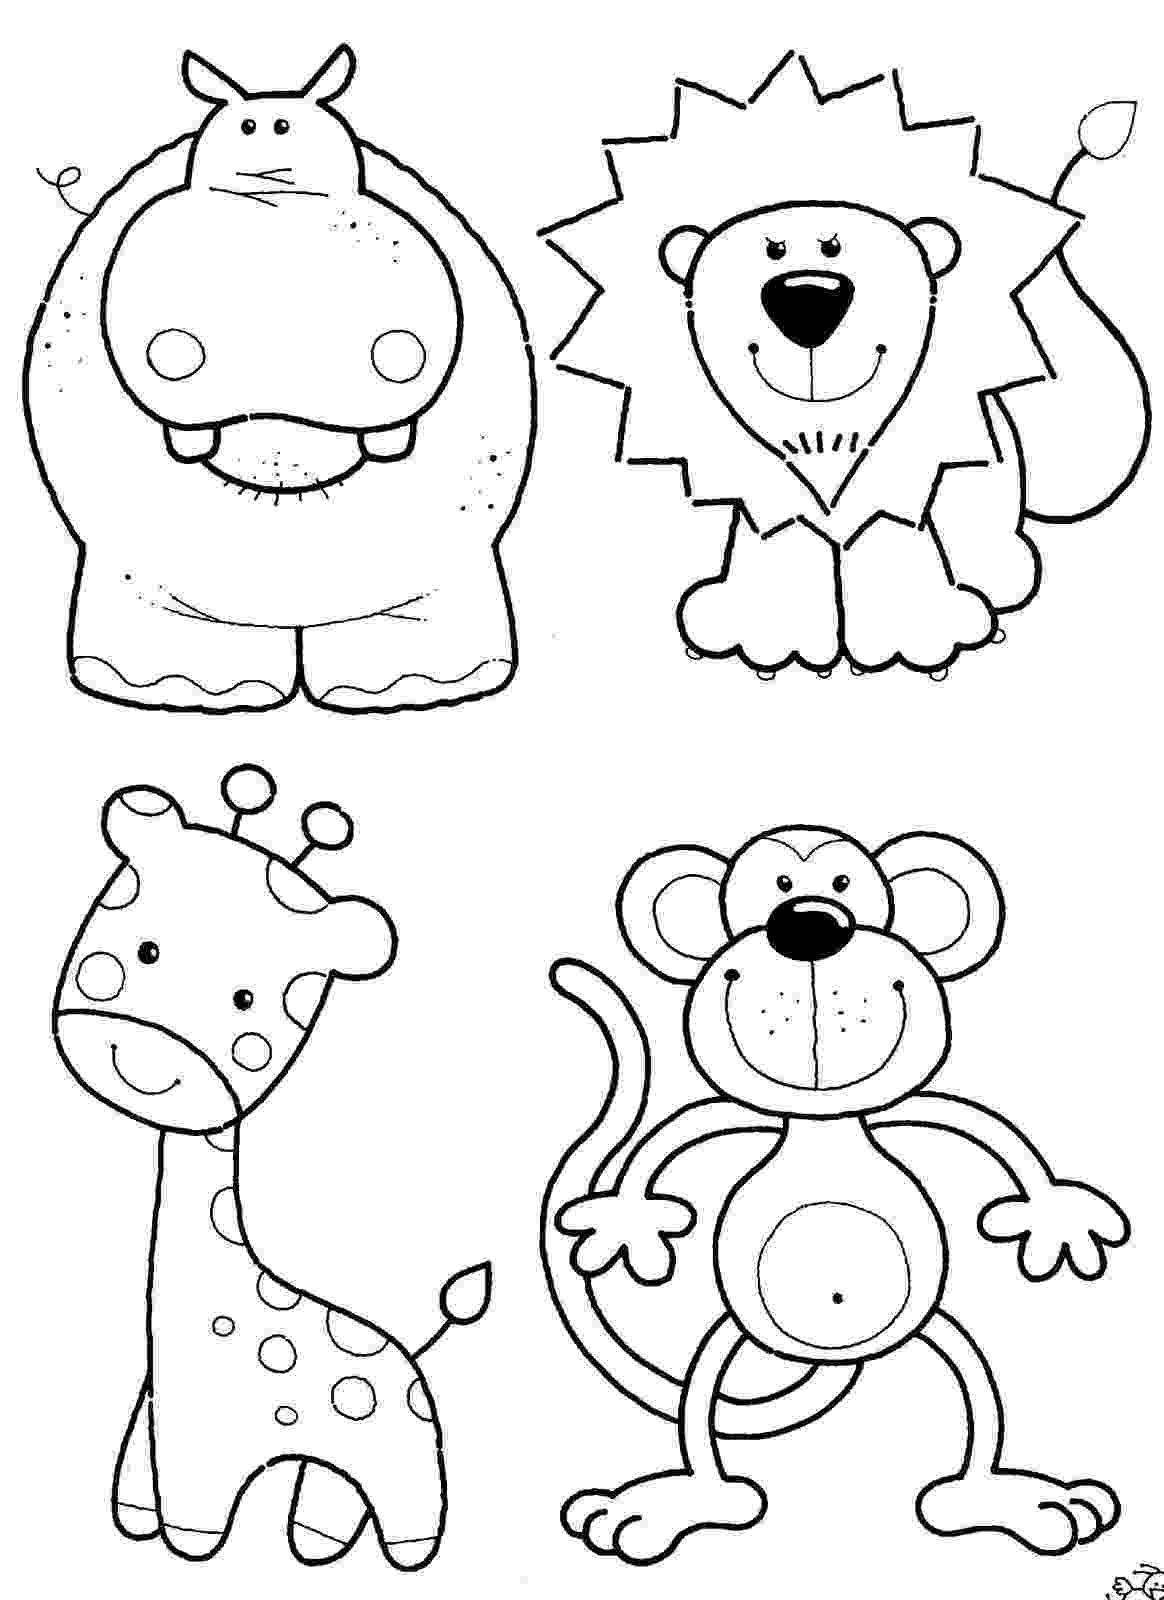 printable animal colouring books stunning wild animals coloring page favecraftscom books animal printable colouring